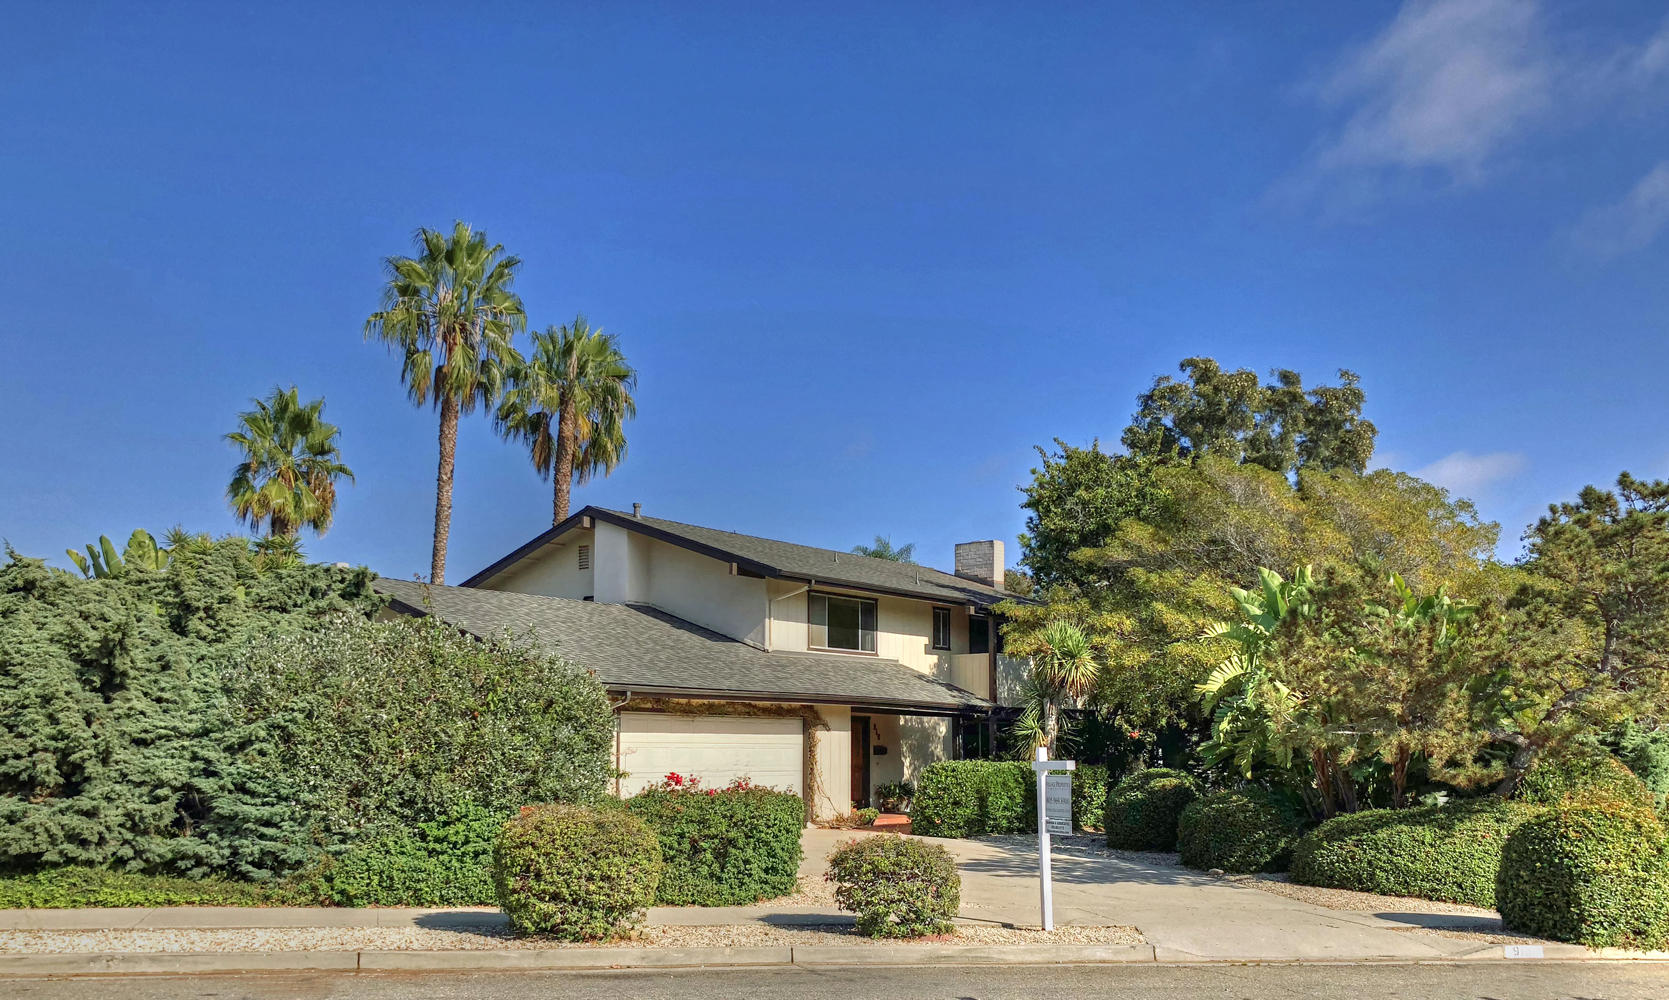 Property photo for 910 Randolph Road Santa Barbara, California 93111 - 18-3536